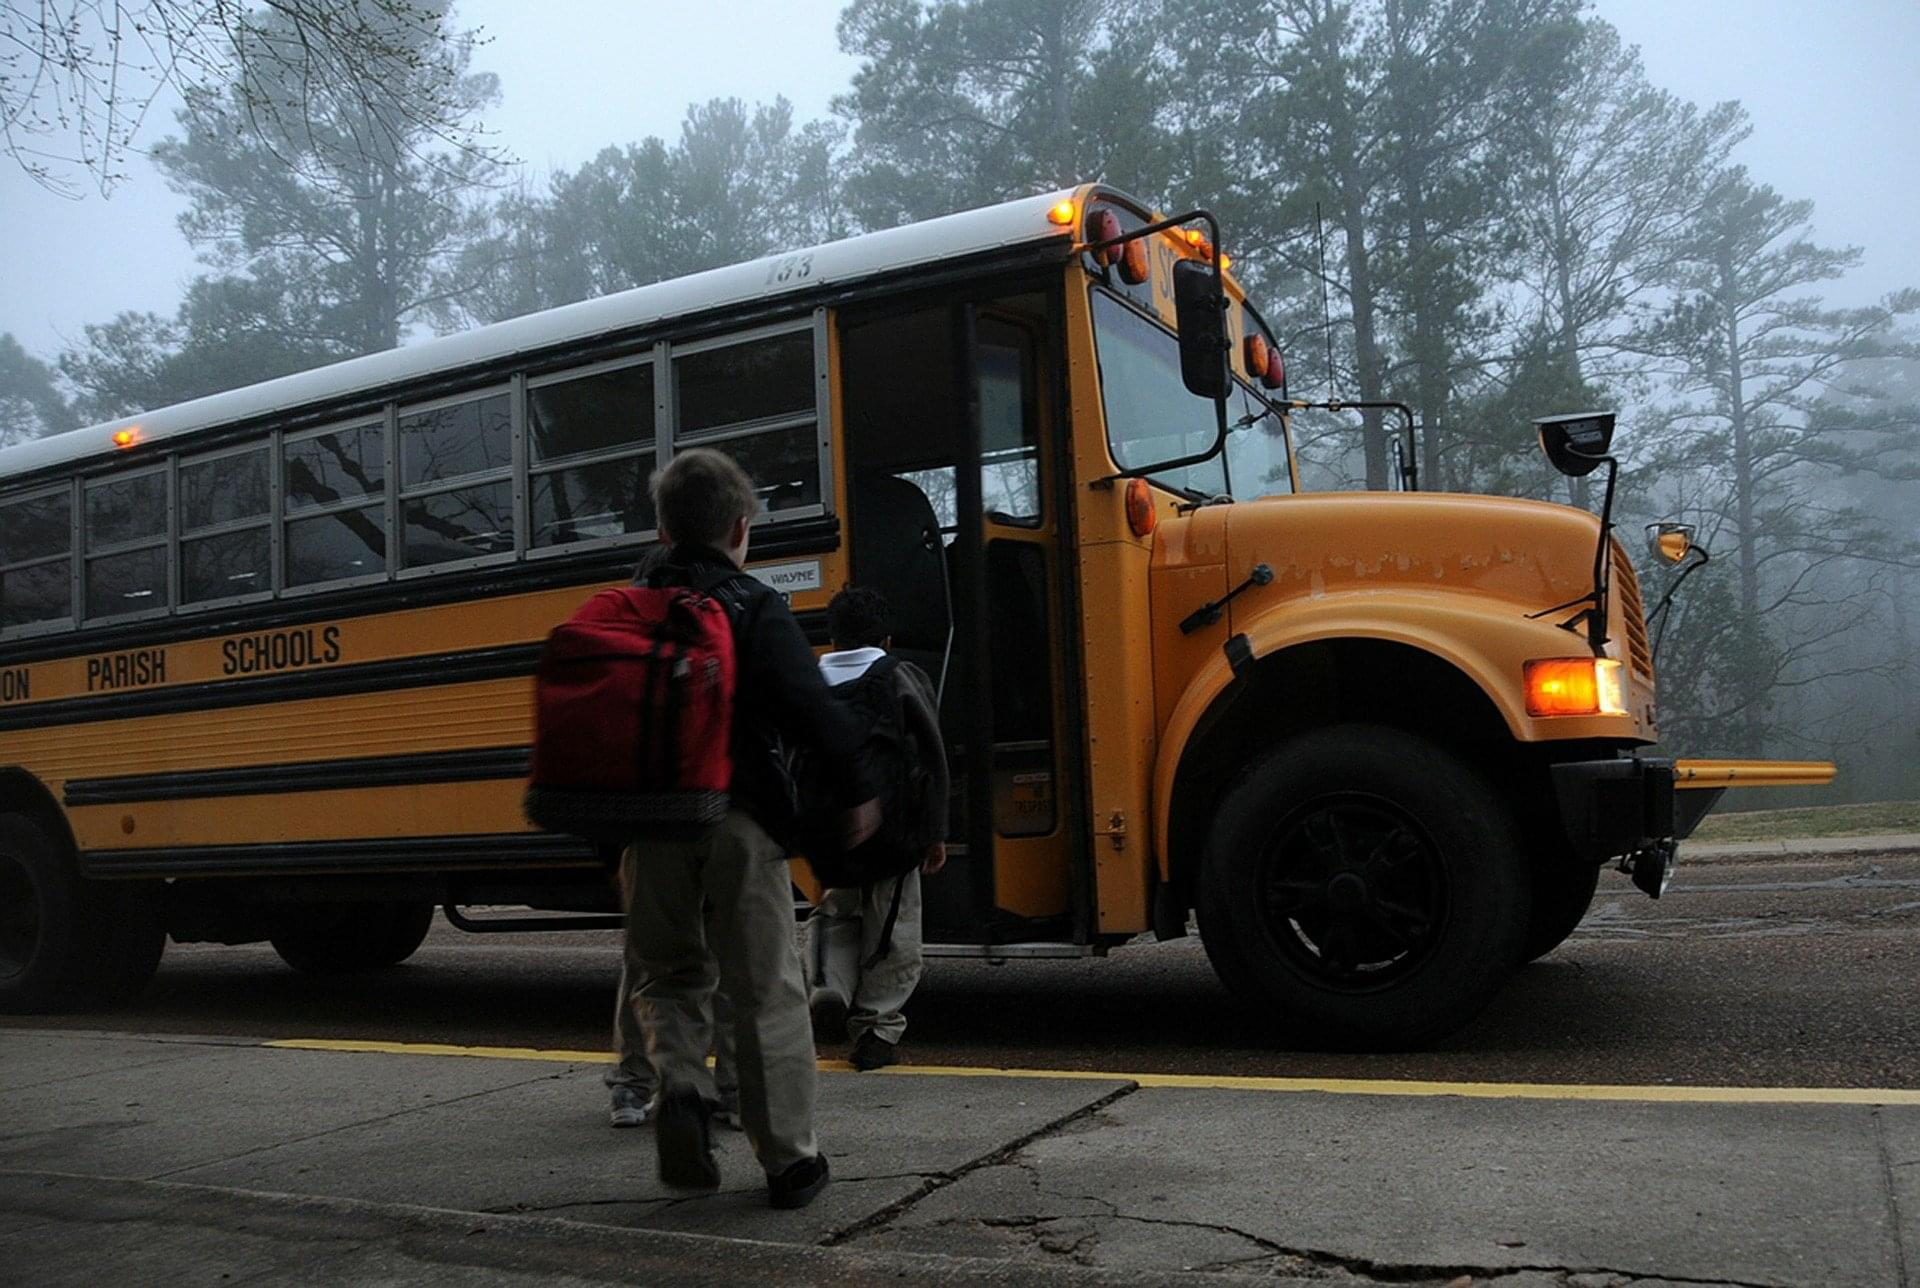 Back to school delayed again due to storms: Vermillion Parish